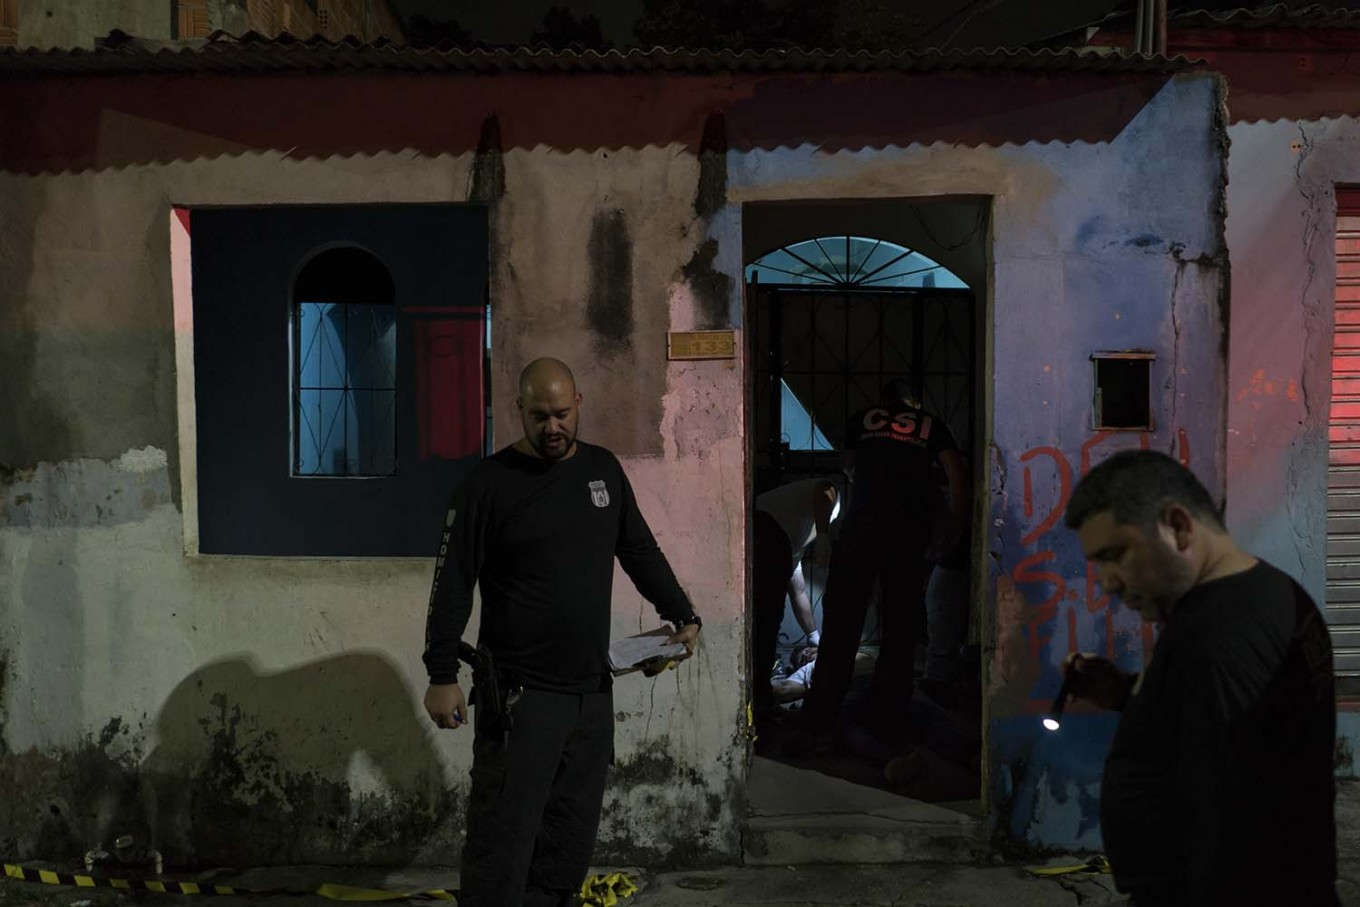 In this Feb. 5, 2017 photo, police inspect a home where a murder victim lies on the floor in Manaus, Brazil. The increasingly violent city is a thoroughfare for drug trafficking across South America, where authorities suspect most murders are gang related. AP Photo/Felipe Dana